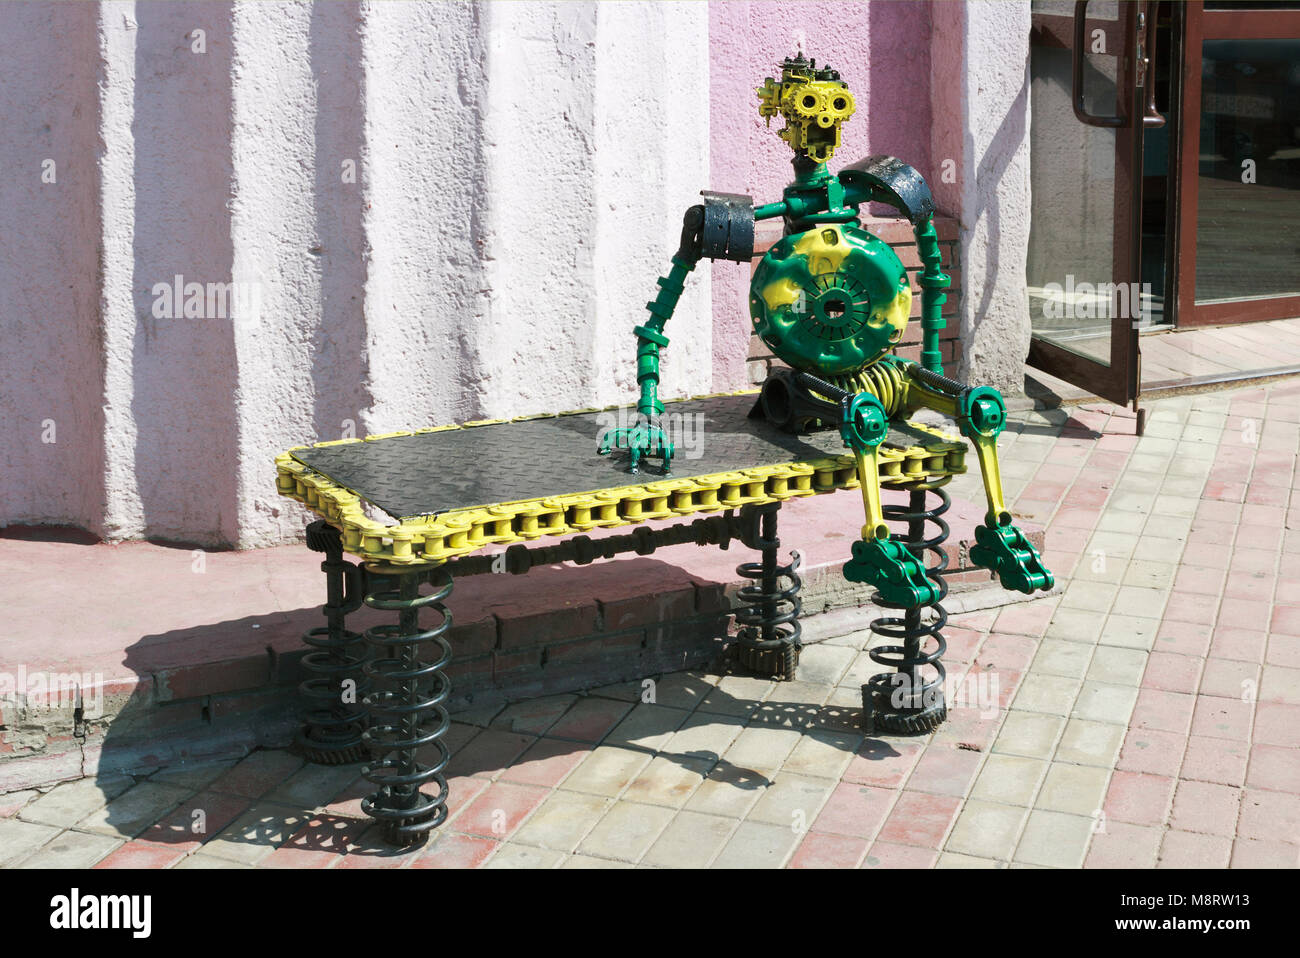 The sculpture is made out of car parts Stock Photo